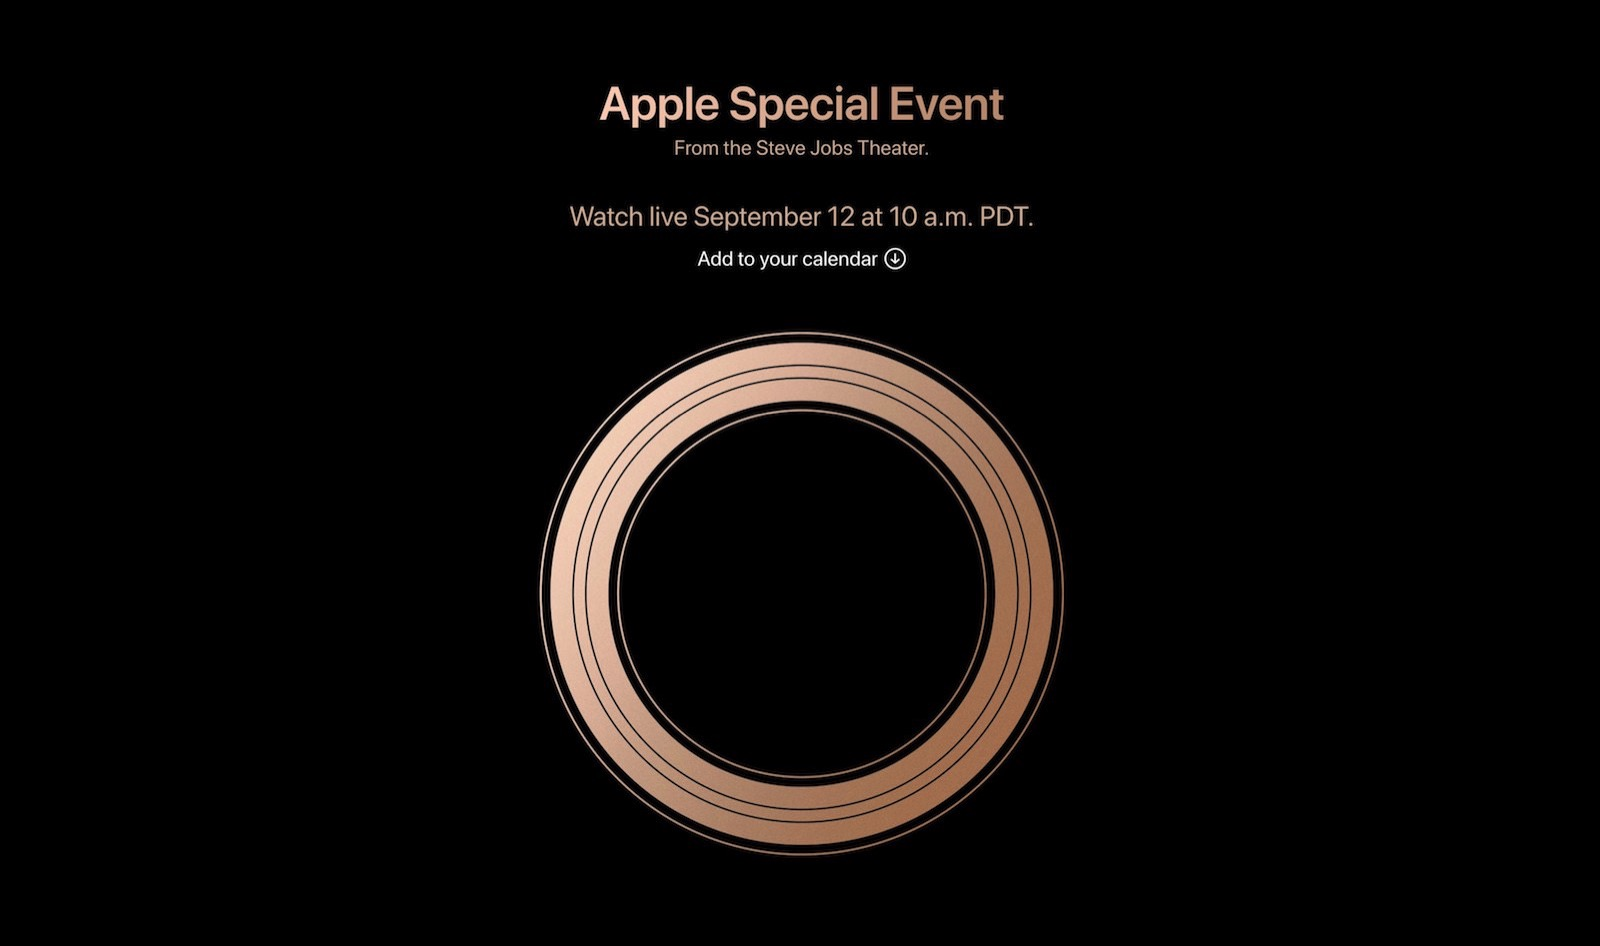 Gather-round-Apple-Special-iPhone-Event.jpg